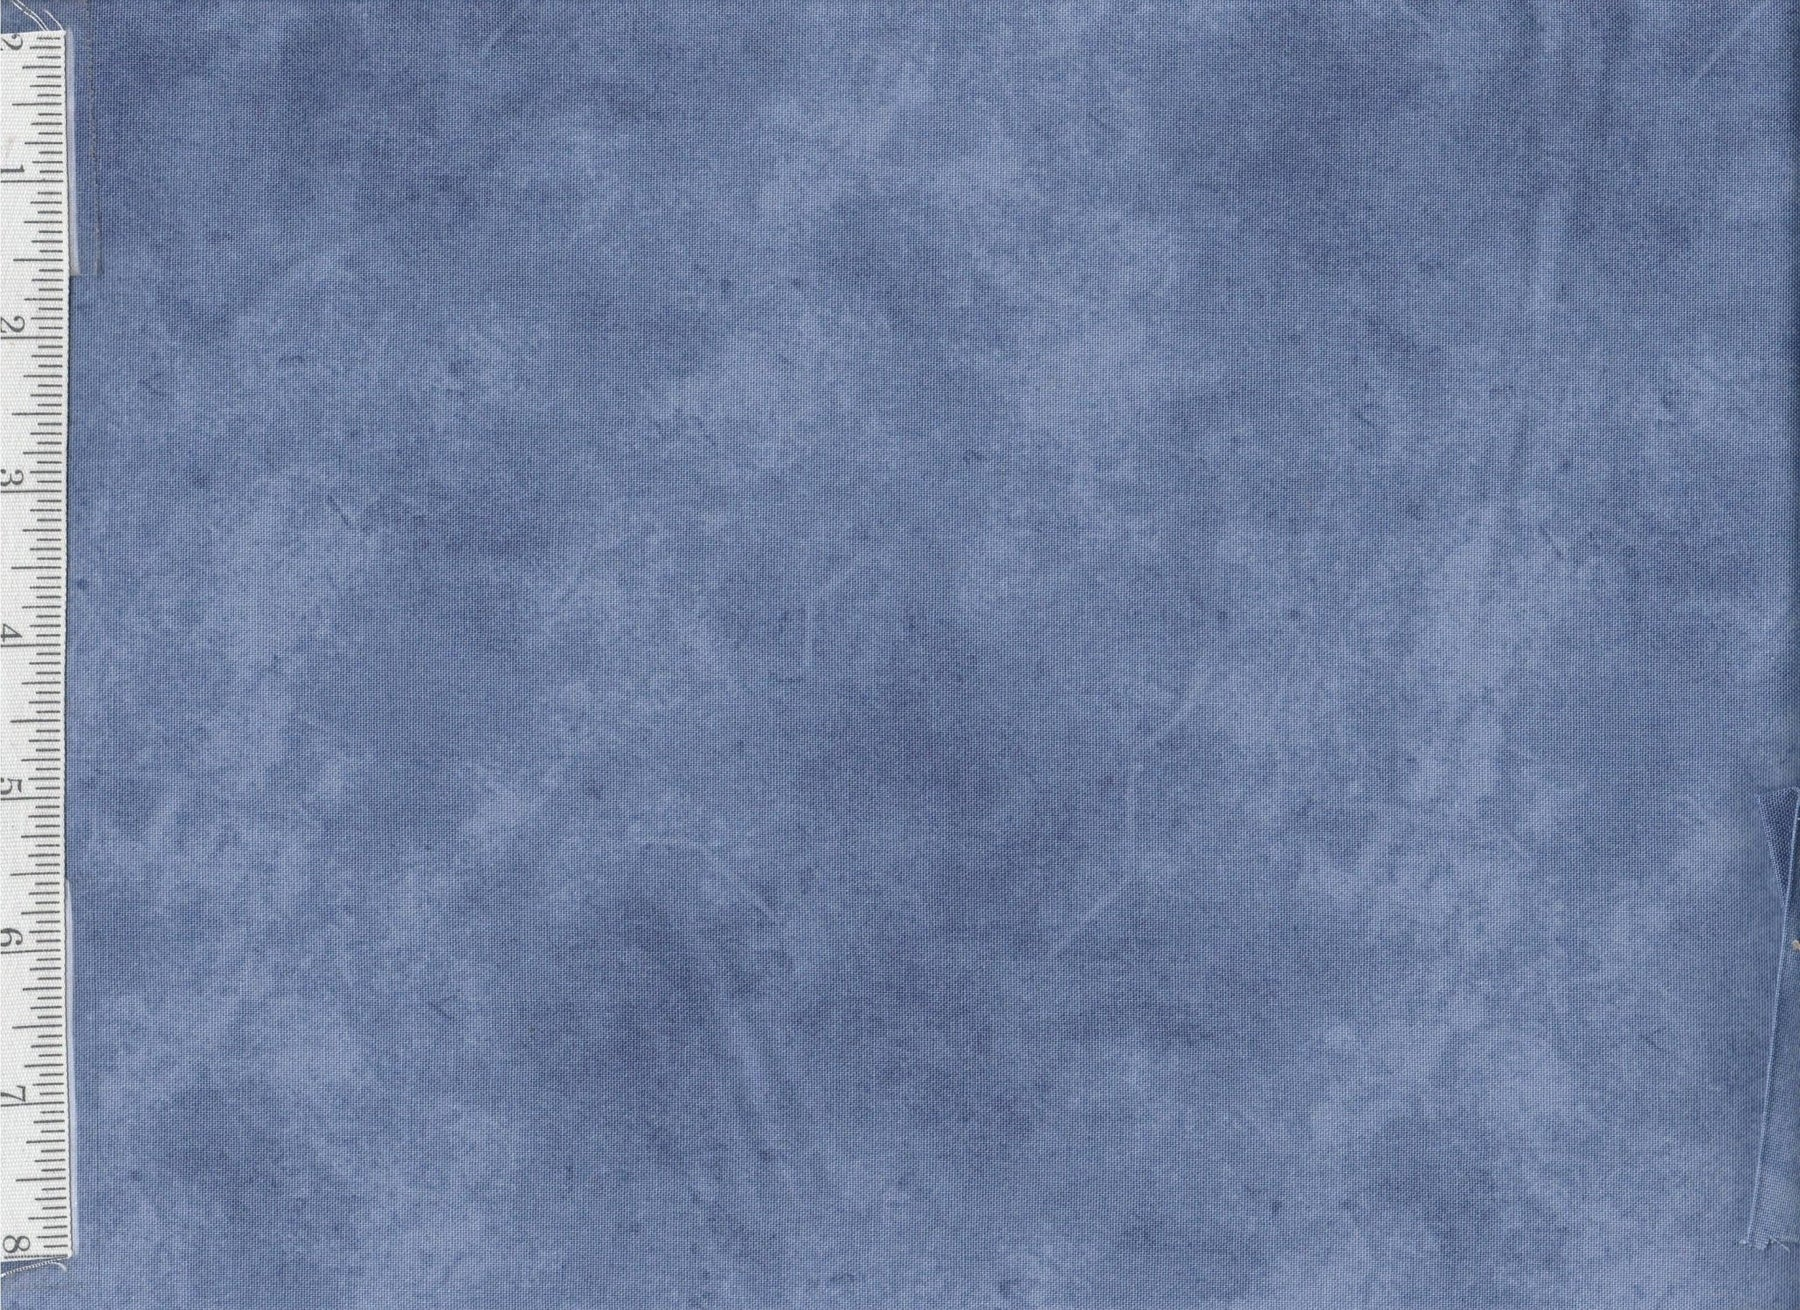 Bella Suede - per yard - P&B Textiles - Blue - Color # 00300 BV - RebsFabStash